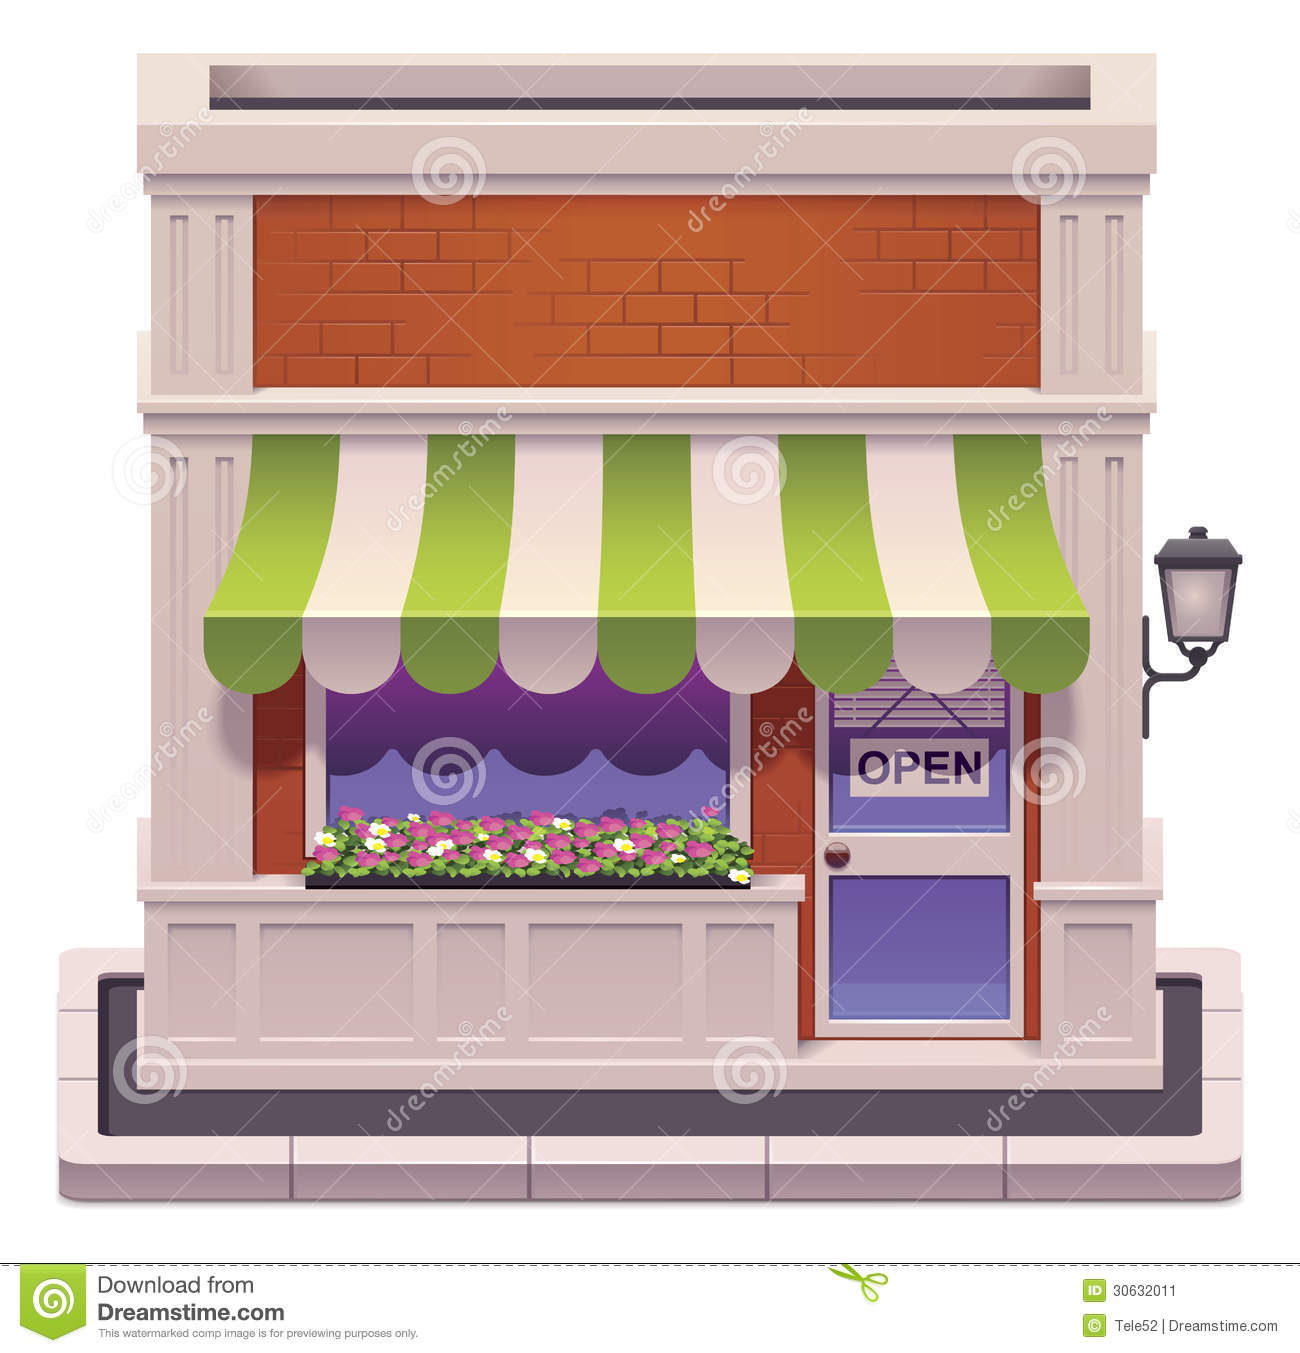 Detailed icon representing shop building with awnings.